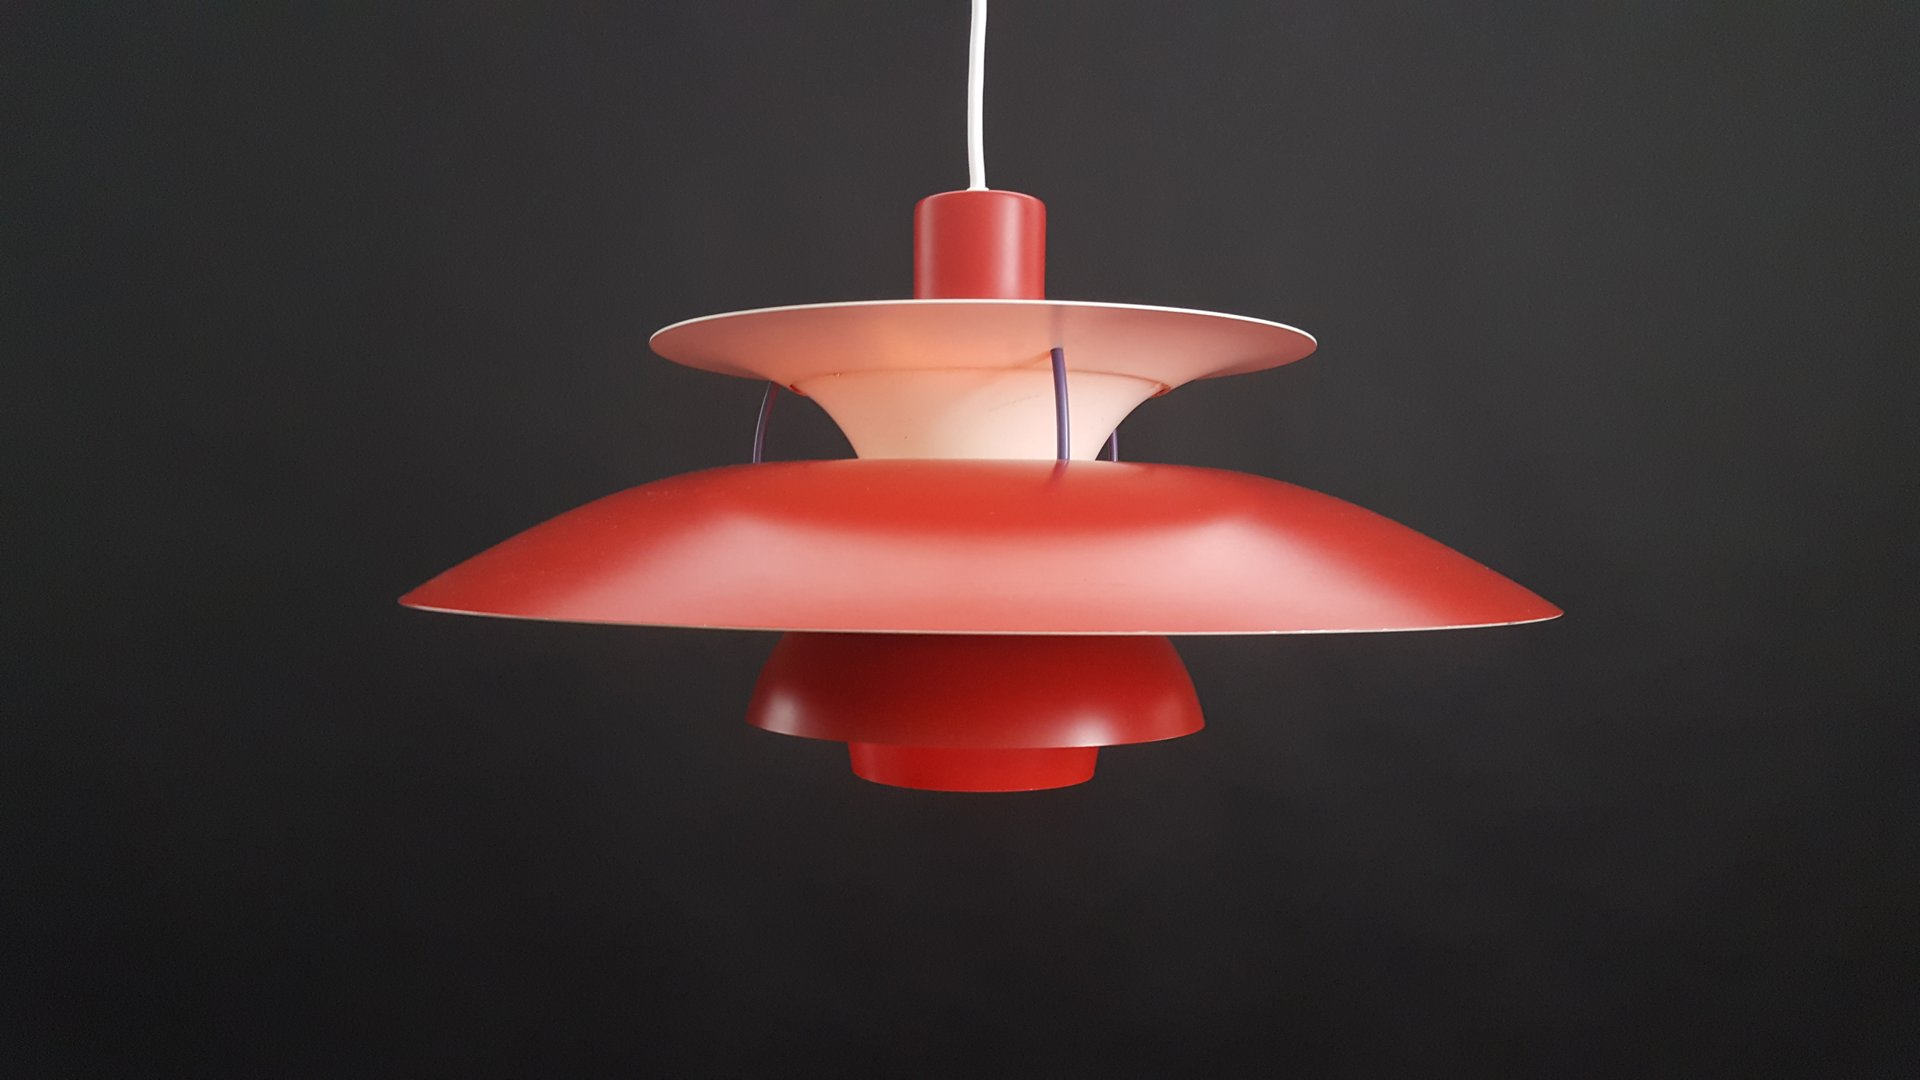 vintage red danish ph5 pendant light by poul henningsen for louis poulsen for sale at pamono. Black Bedroom Furniture Sets. Home Design Ideas